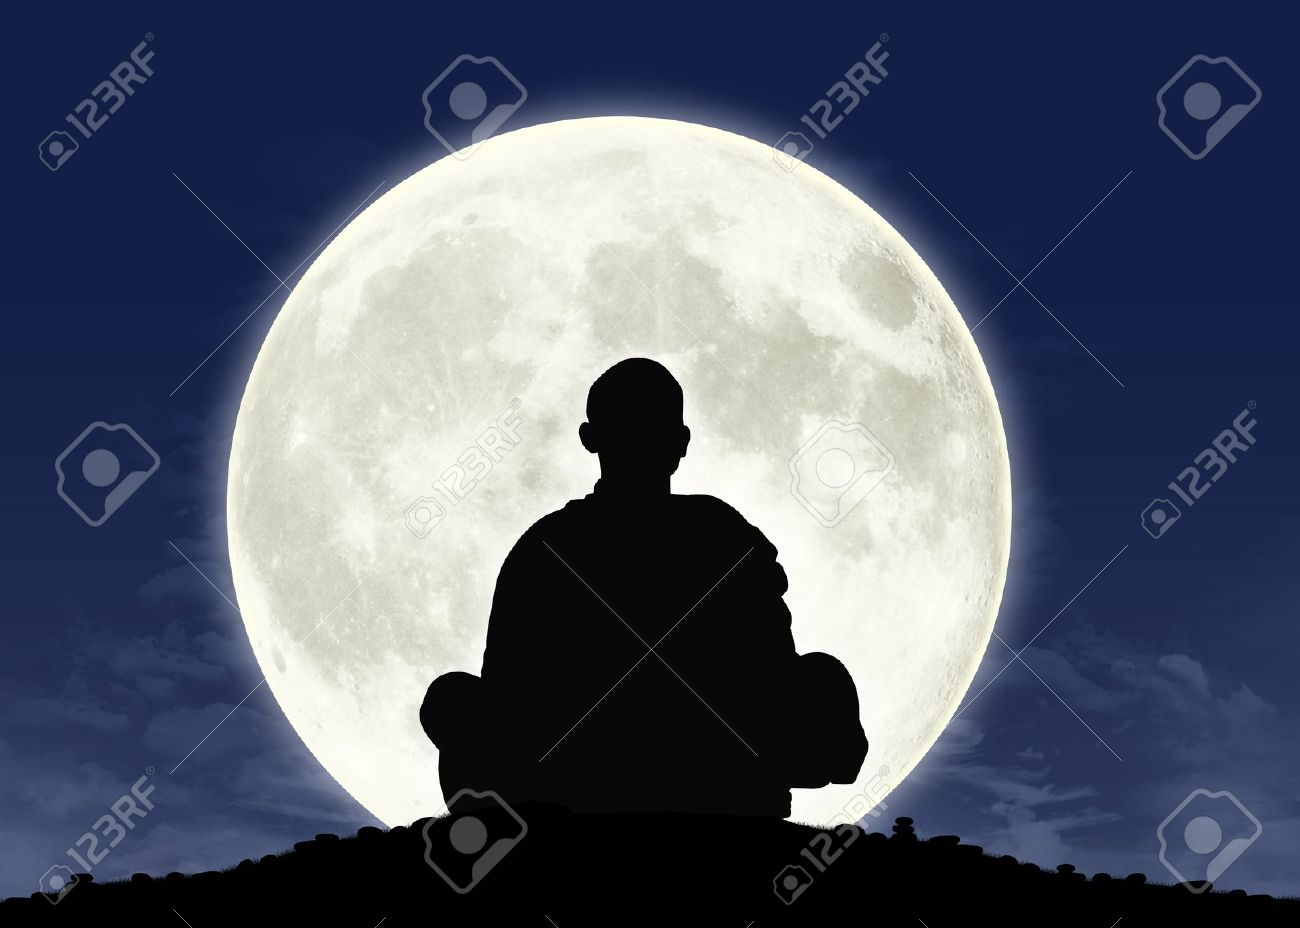 Silhouette Of A Buddhist Monk In Meditation With The Full Moon On Background Stock Photo